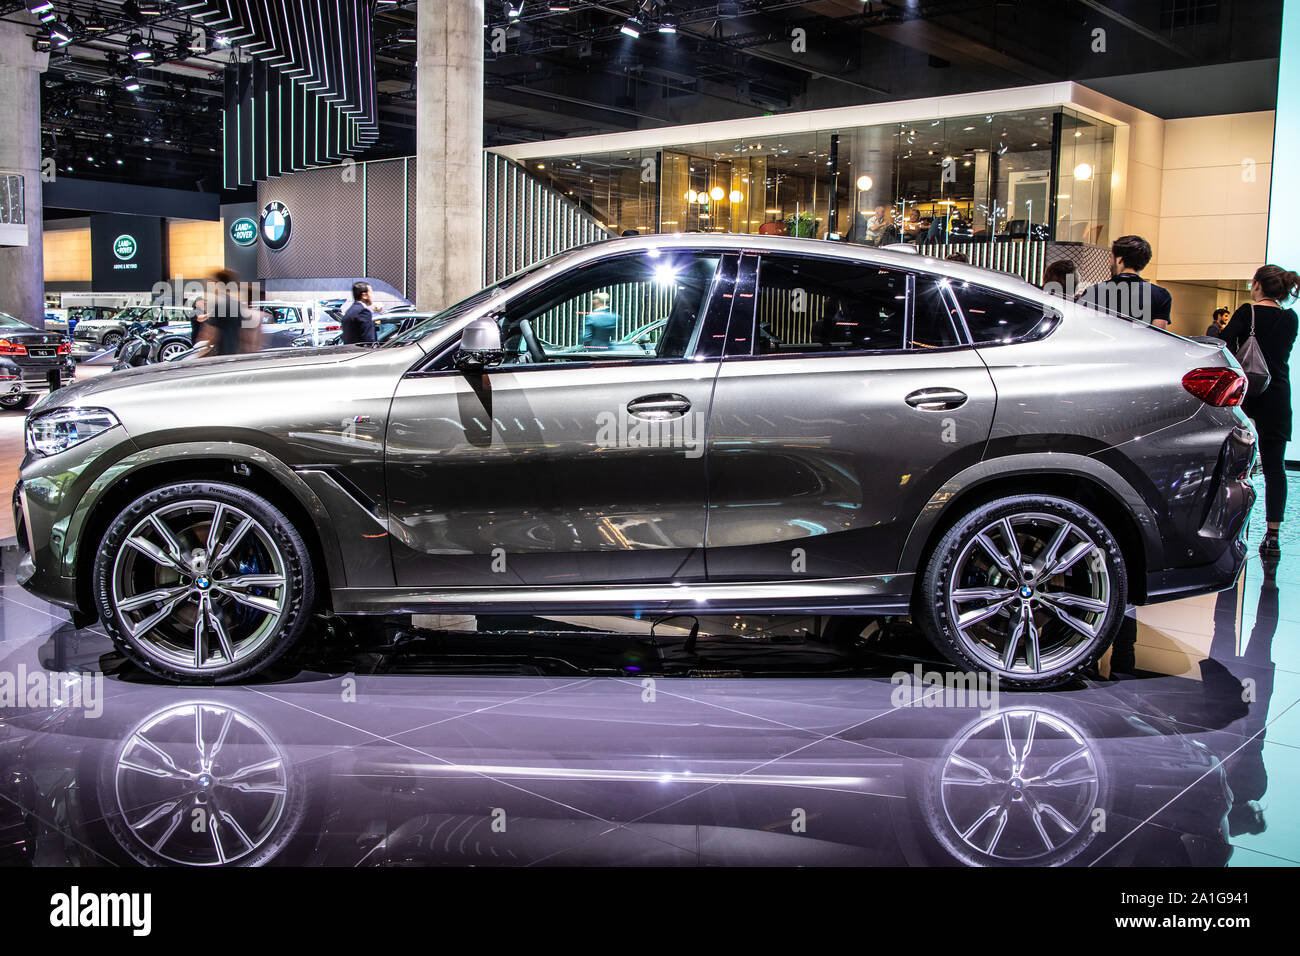 Bmw X6 High Resolution Stock Photography And Images Alamy